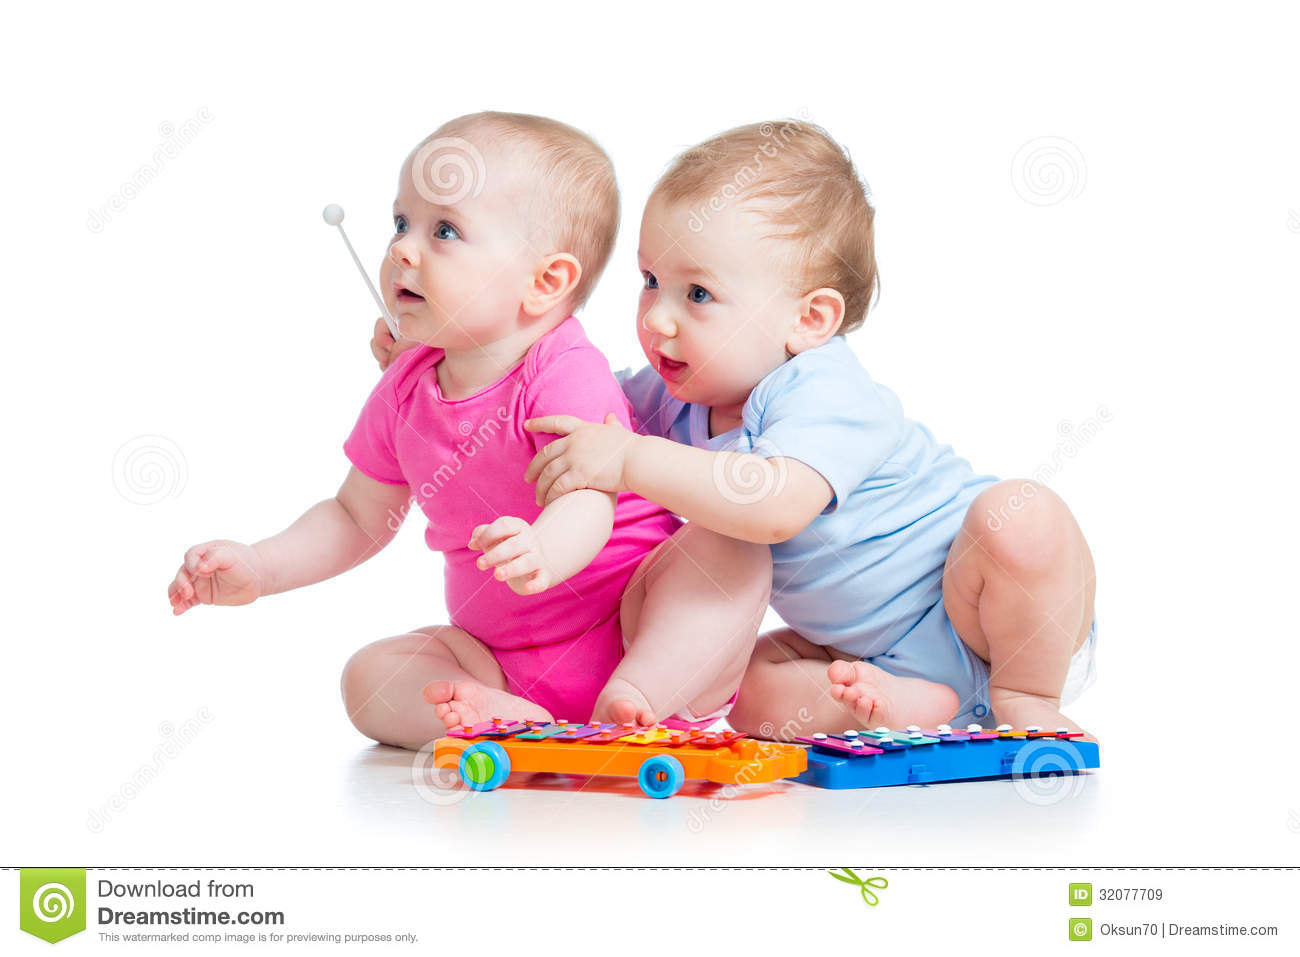 Girls From Boy Toys : Children girl and boy play musical toys stock image